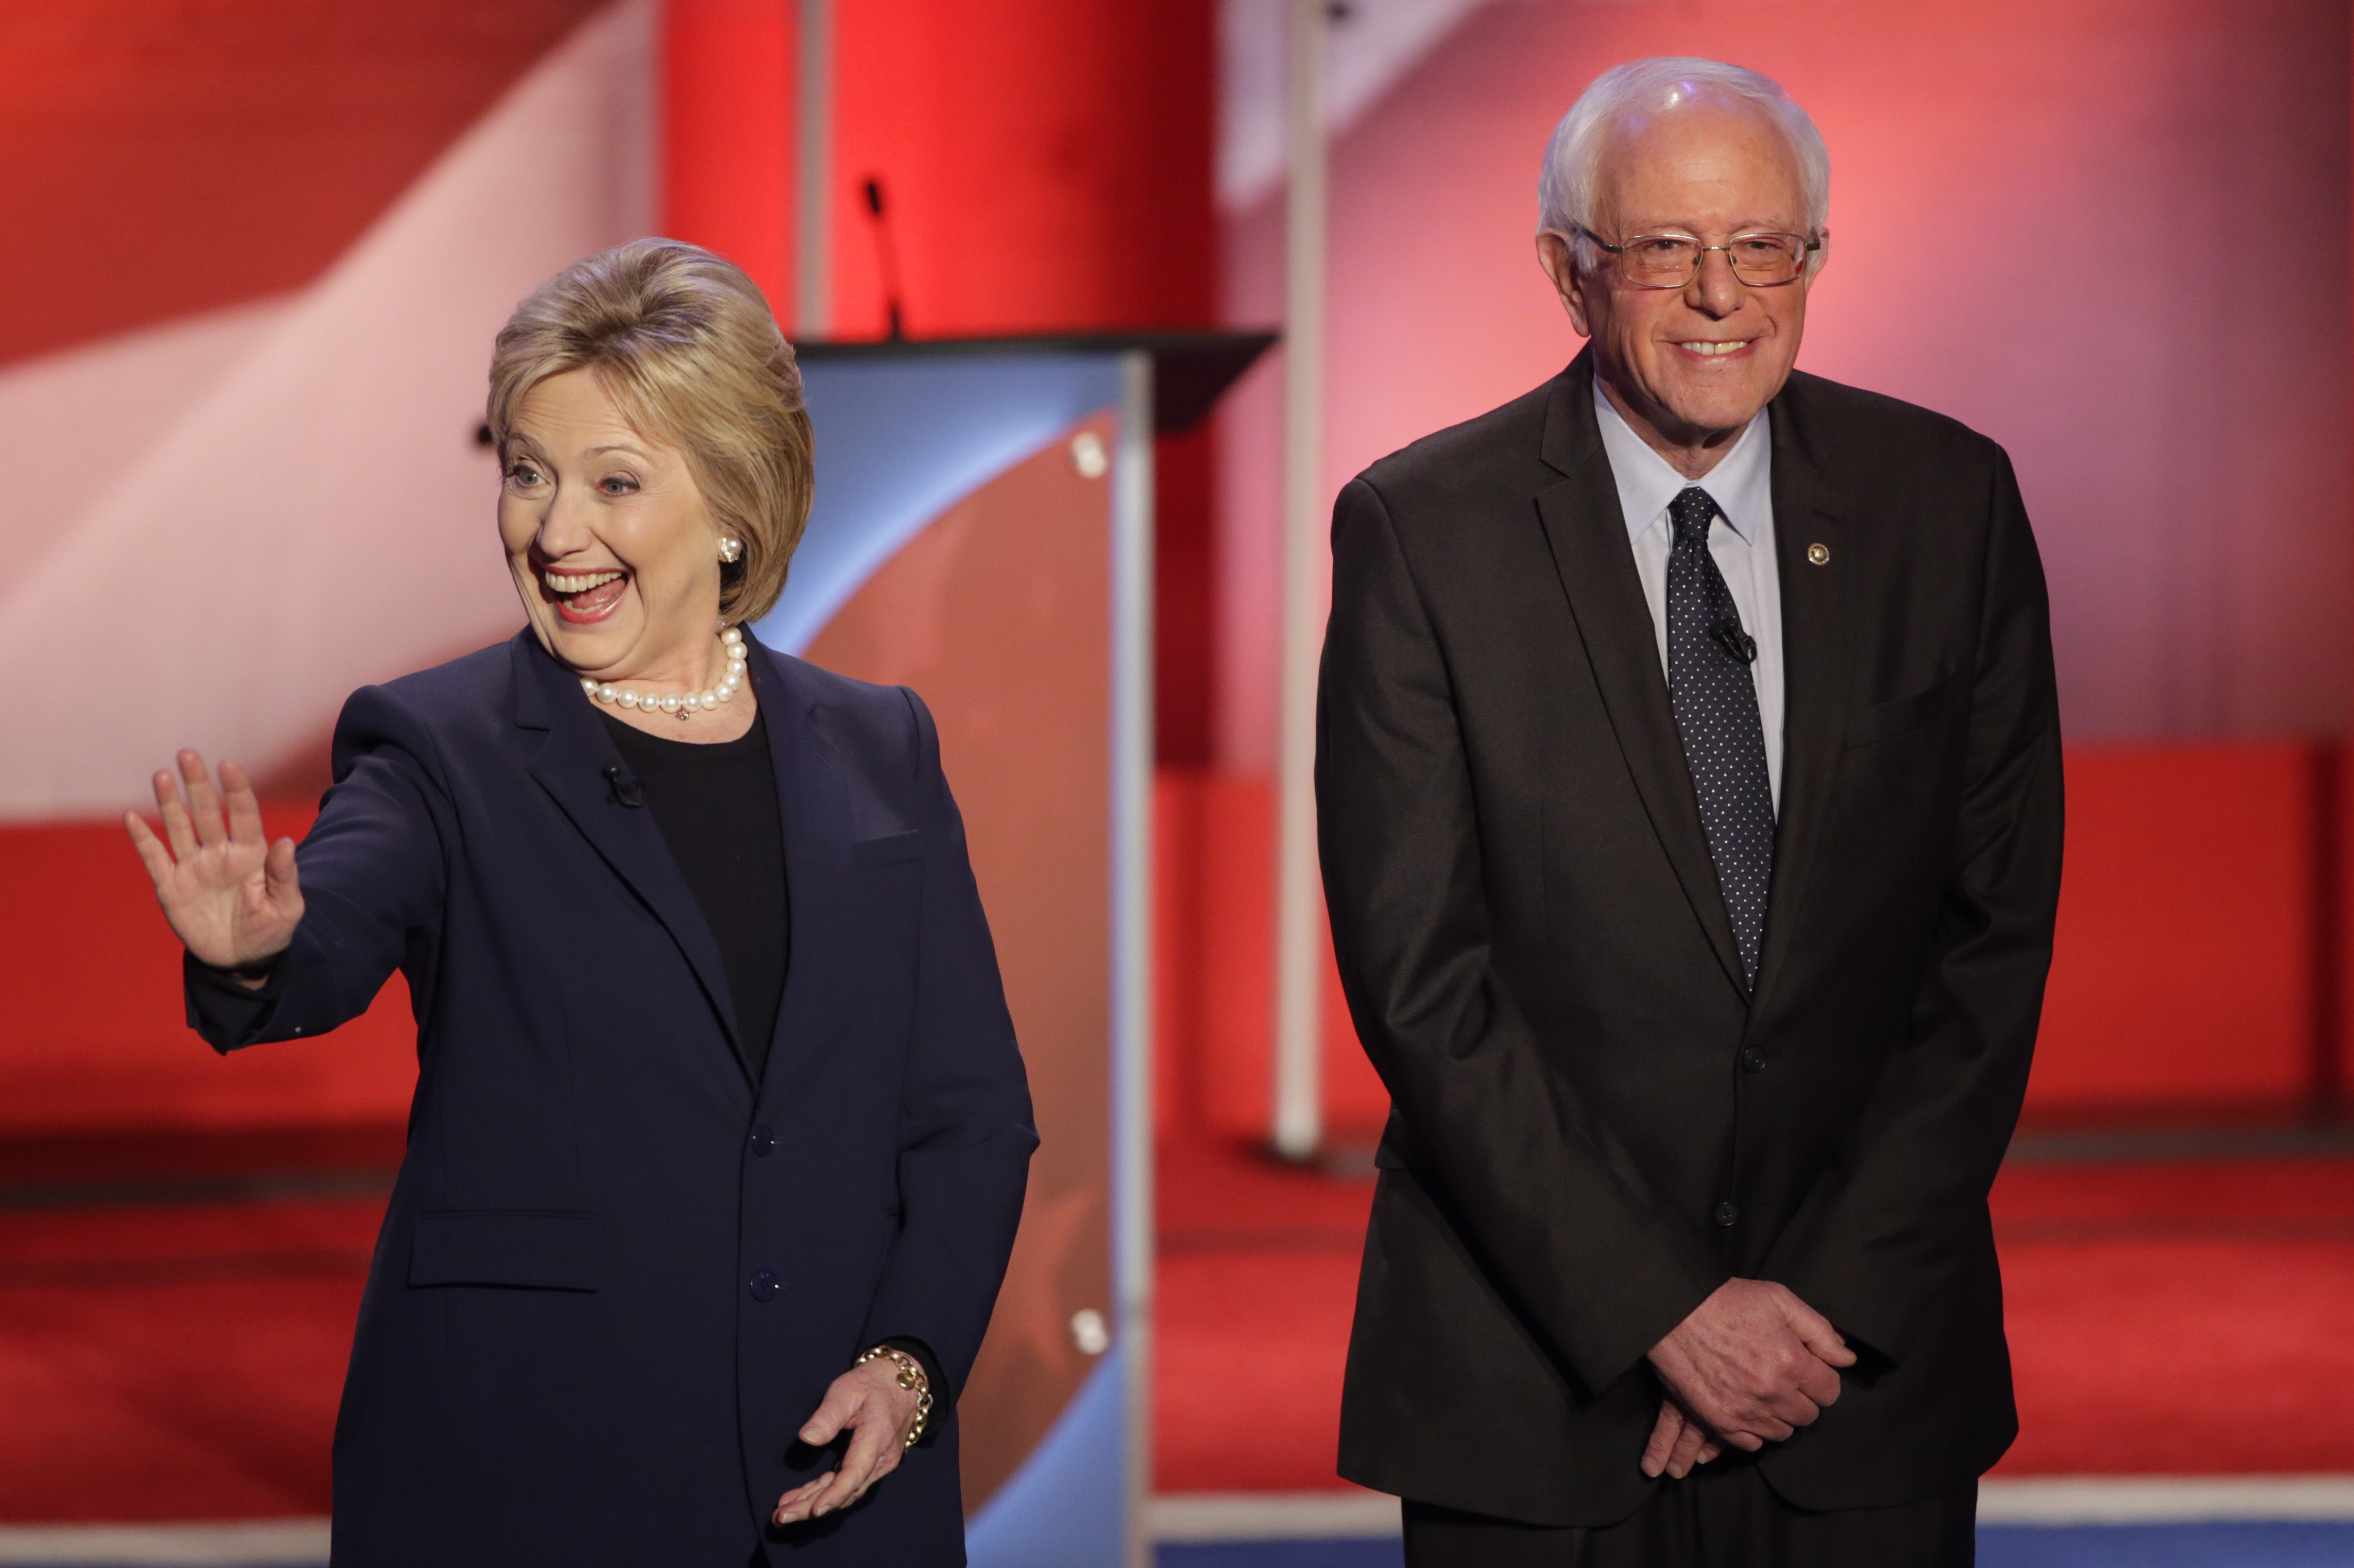 Photo: Hillary Clinton, Bernie Sanders Feb 2016 (AP Photo)